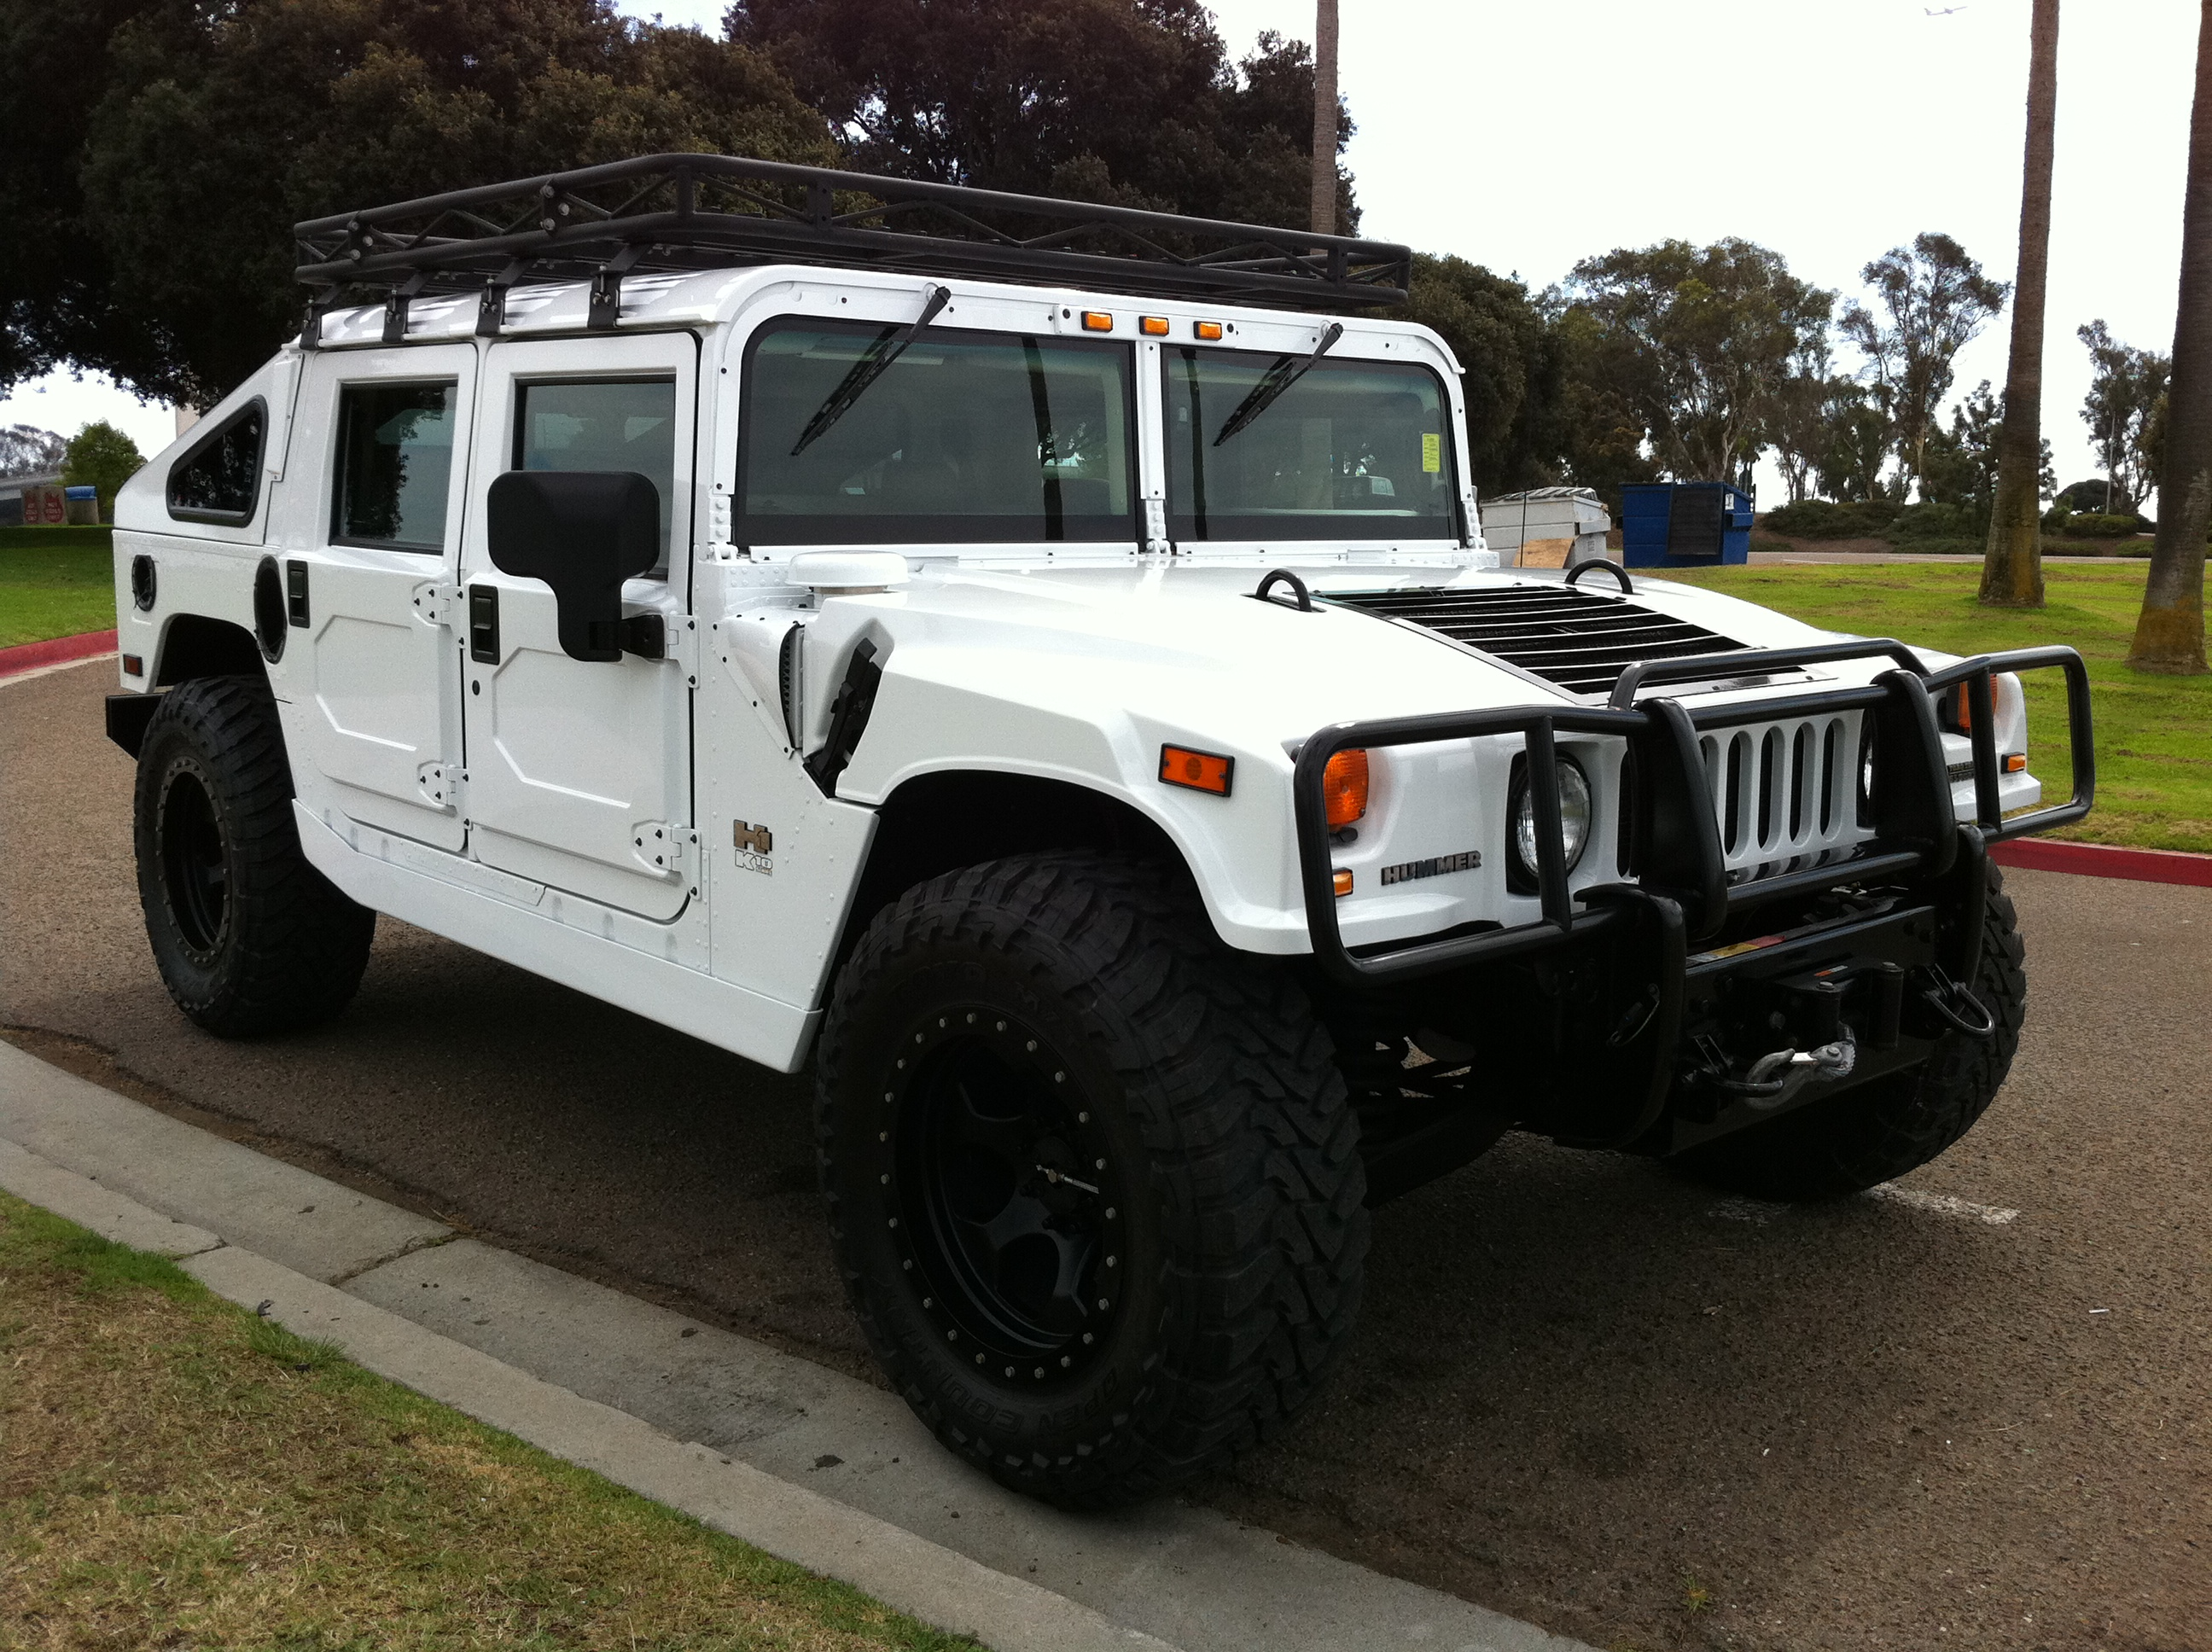 2006 Hummer H1 4 Door Hardtop Ksc4 With Slantback Shell 1